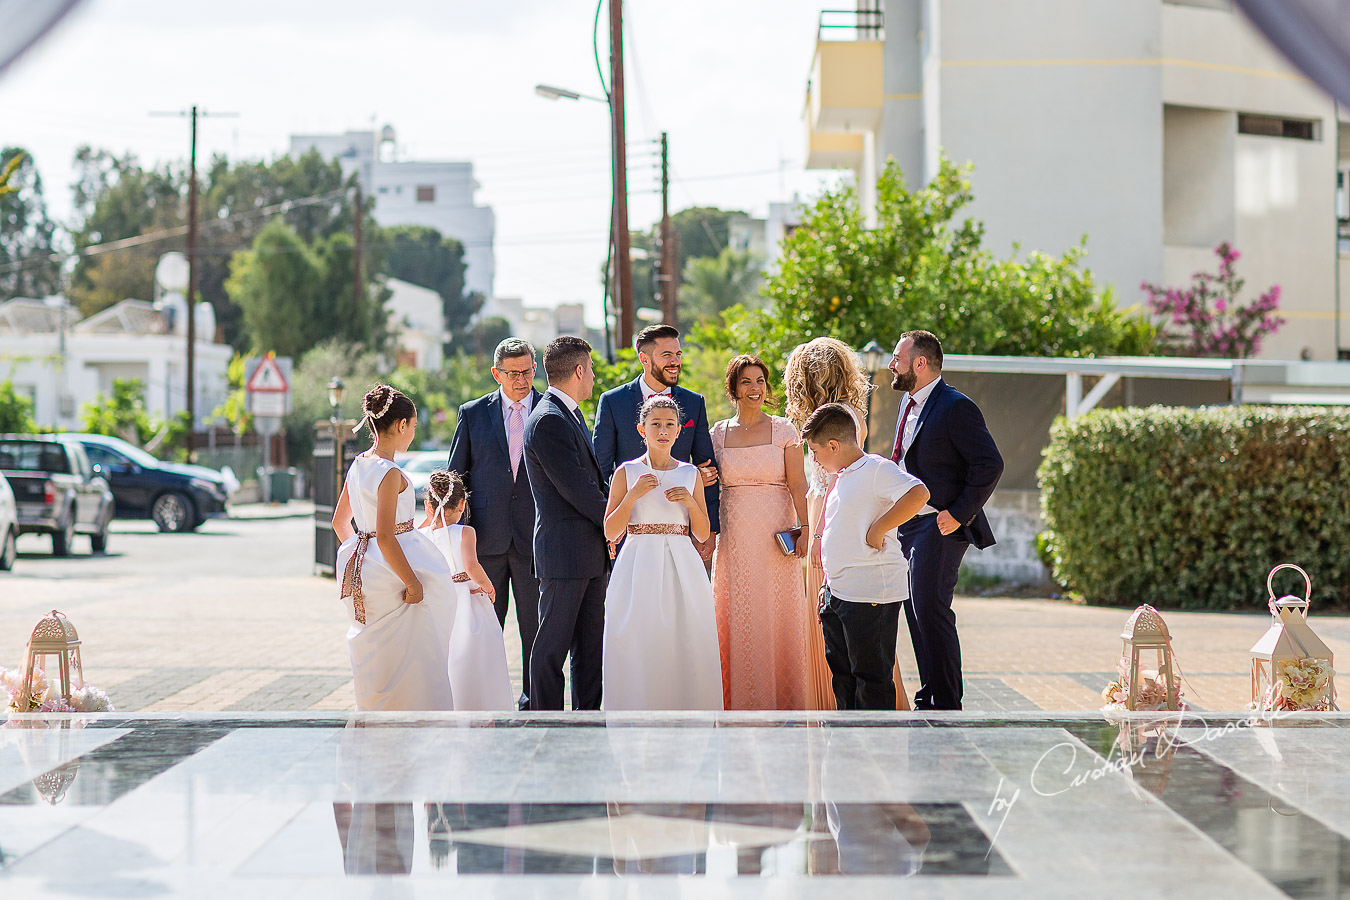 Groom's arrival photographed at a wedding in Nicosia by Cyprus Wedding Photographer Cristian Dascalu